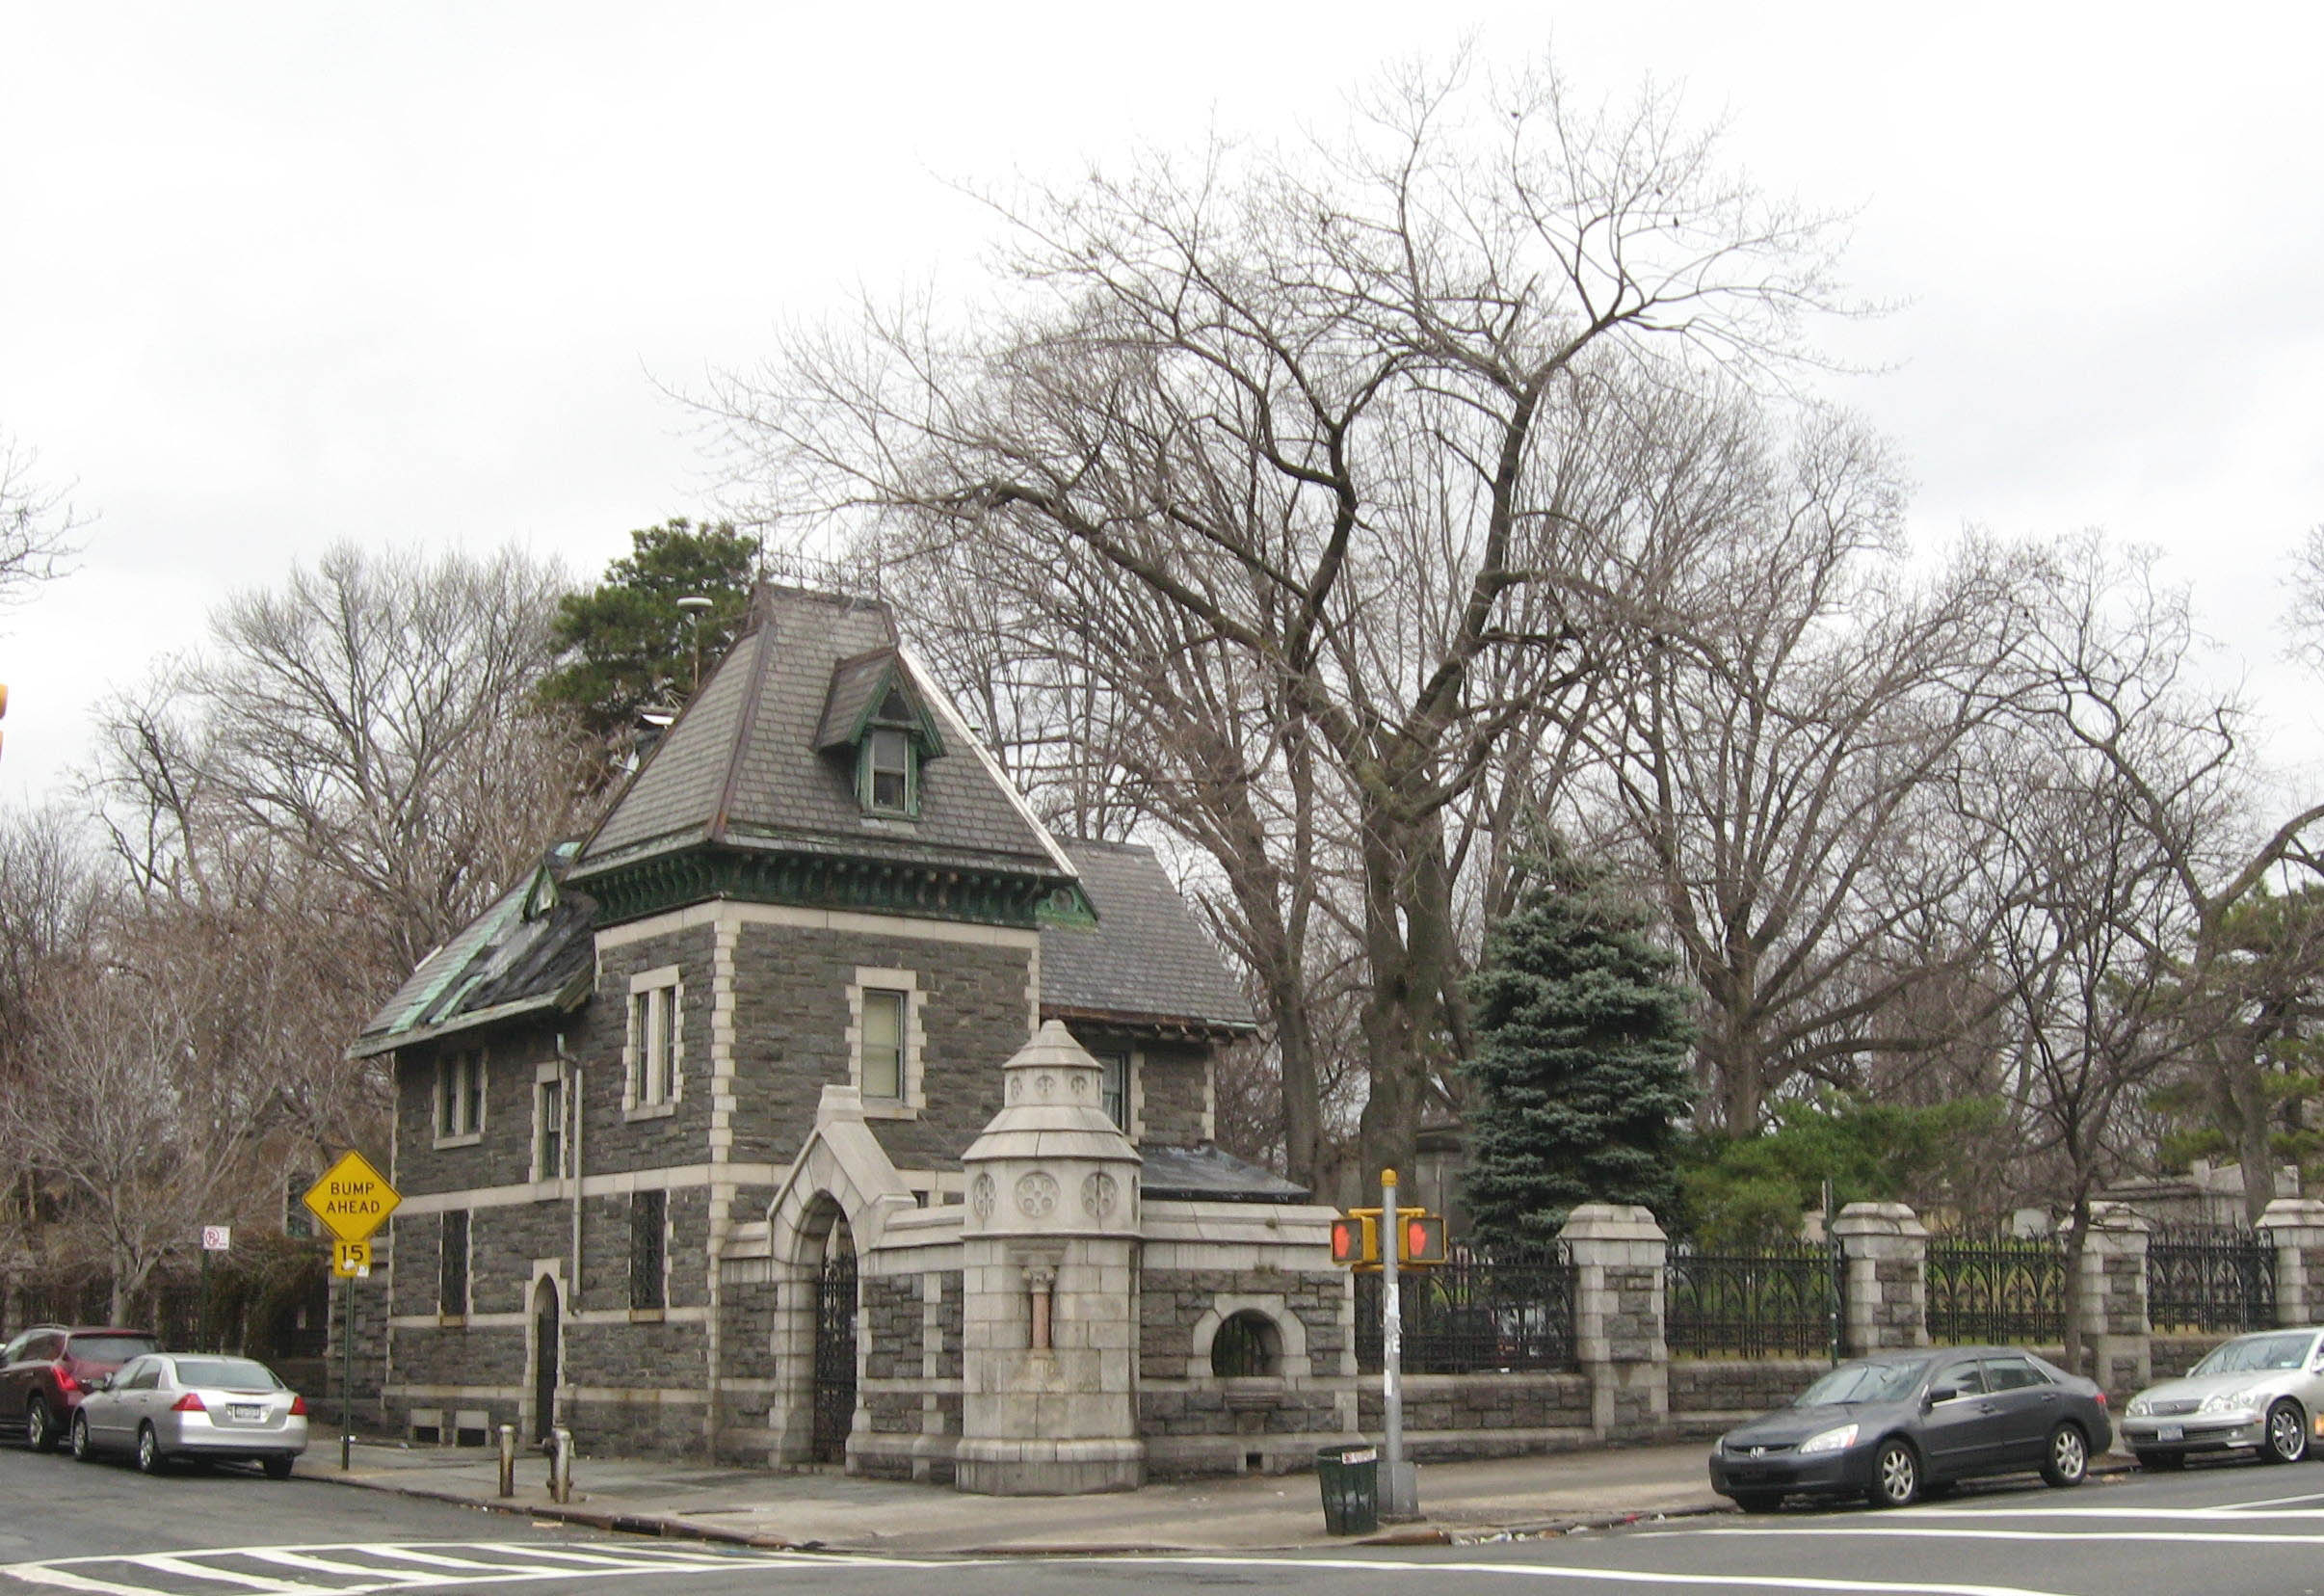 Trinity_Church_Cemetery_Caretaker's_House_153_jeh.jpg